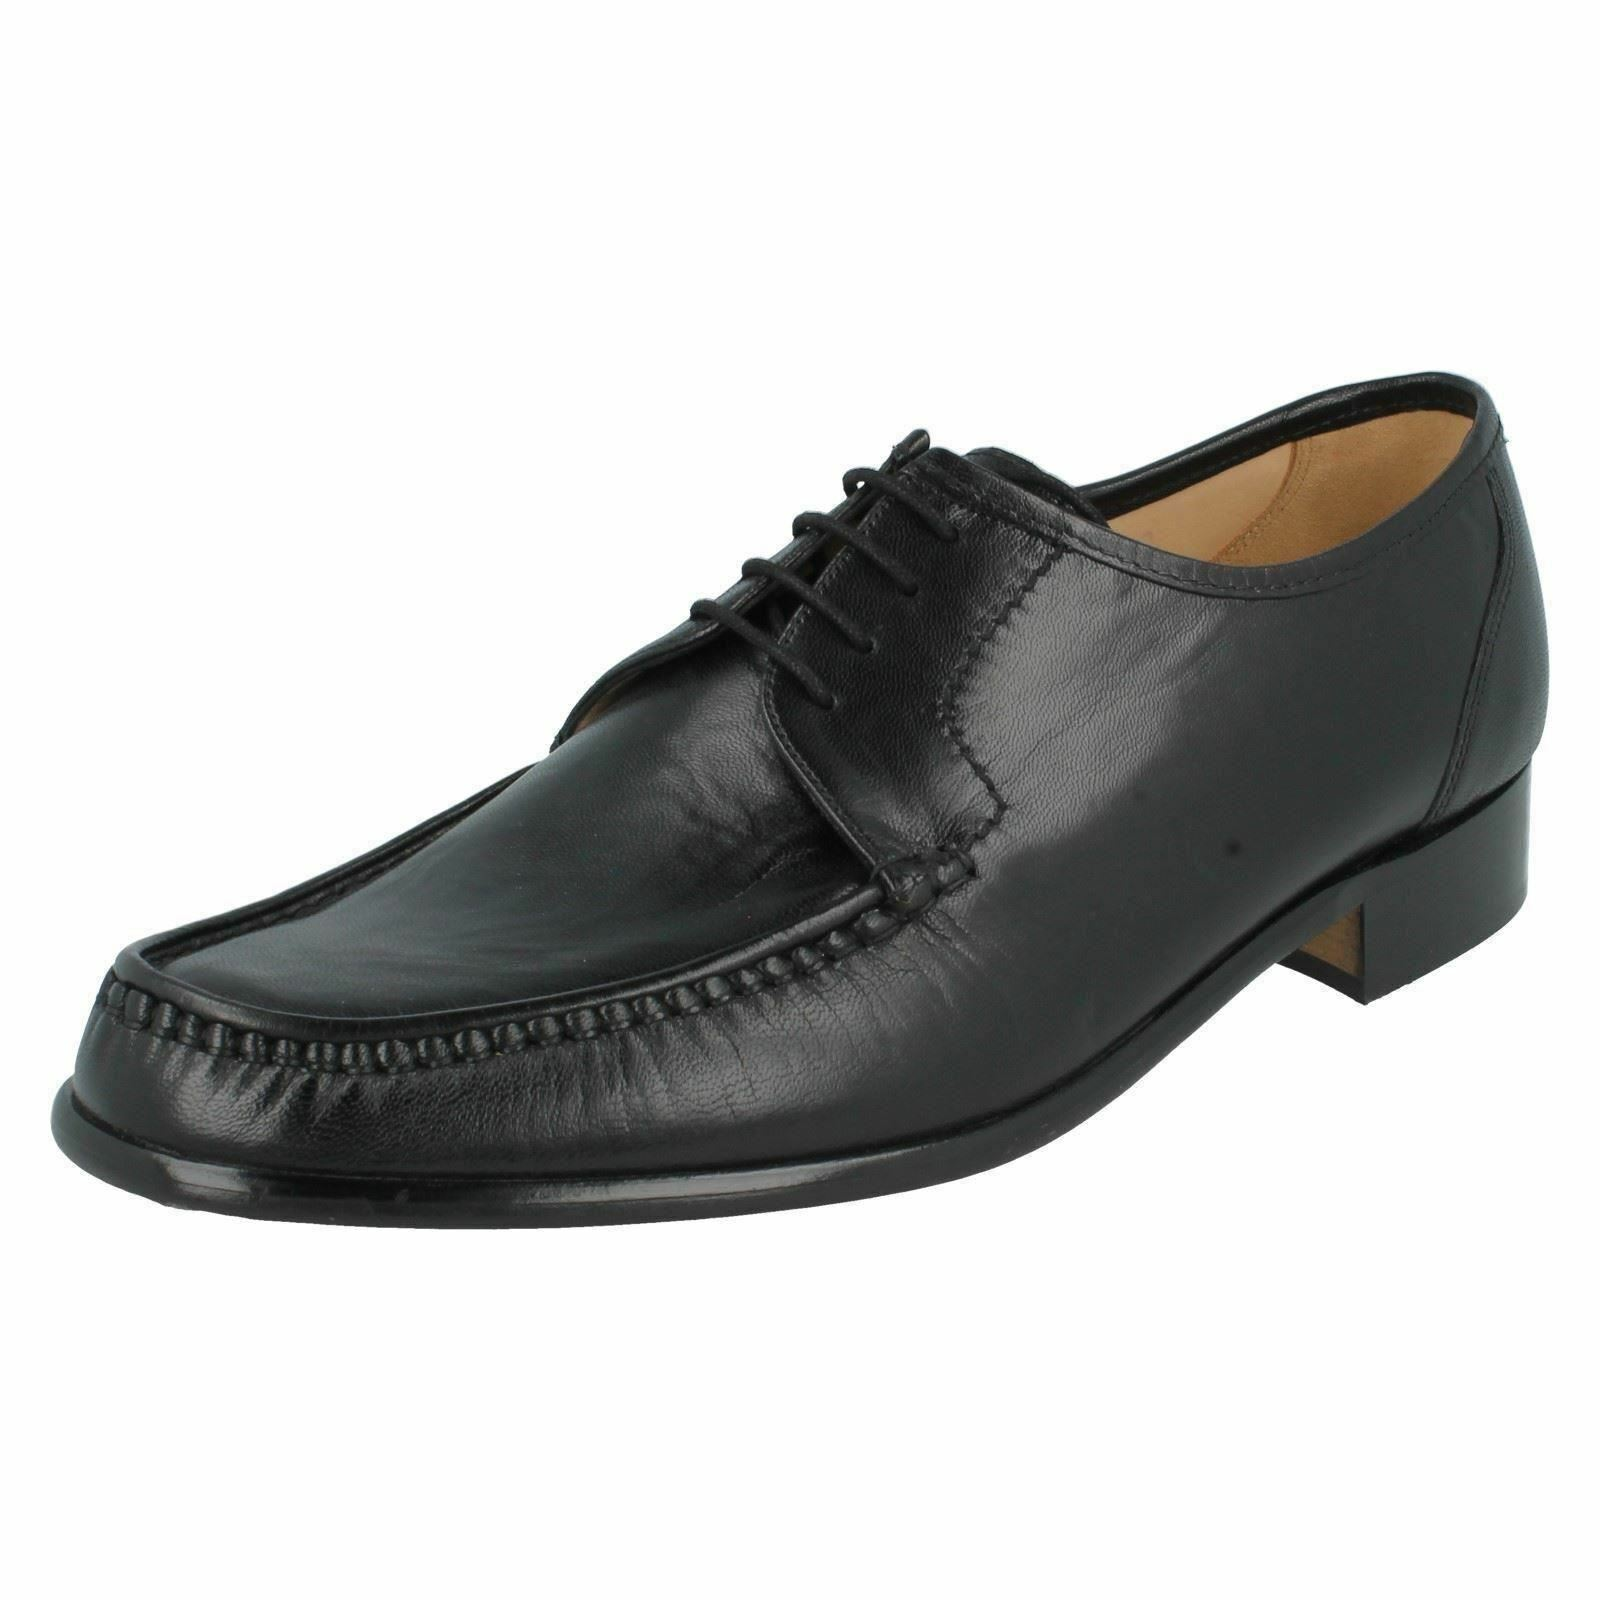 Men's Grenson Lace-Up G Fit Shoes - Crewe